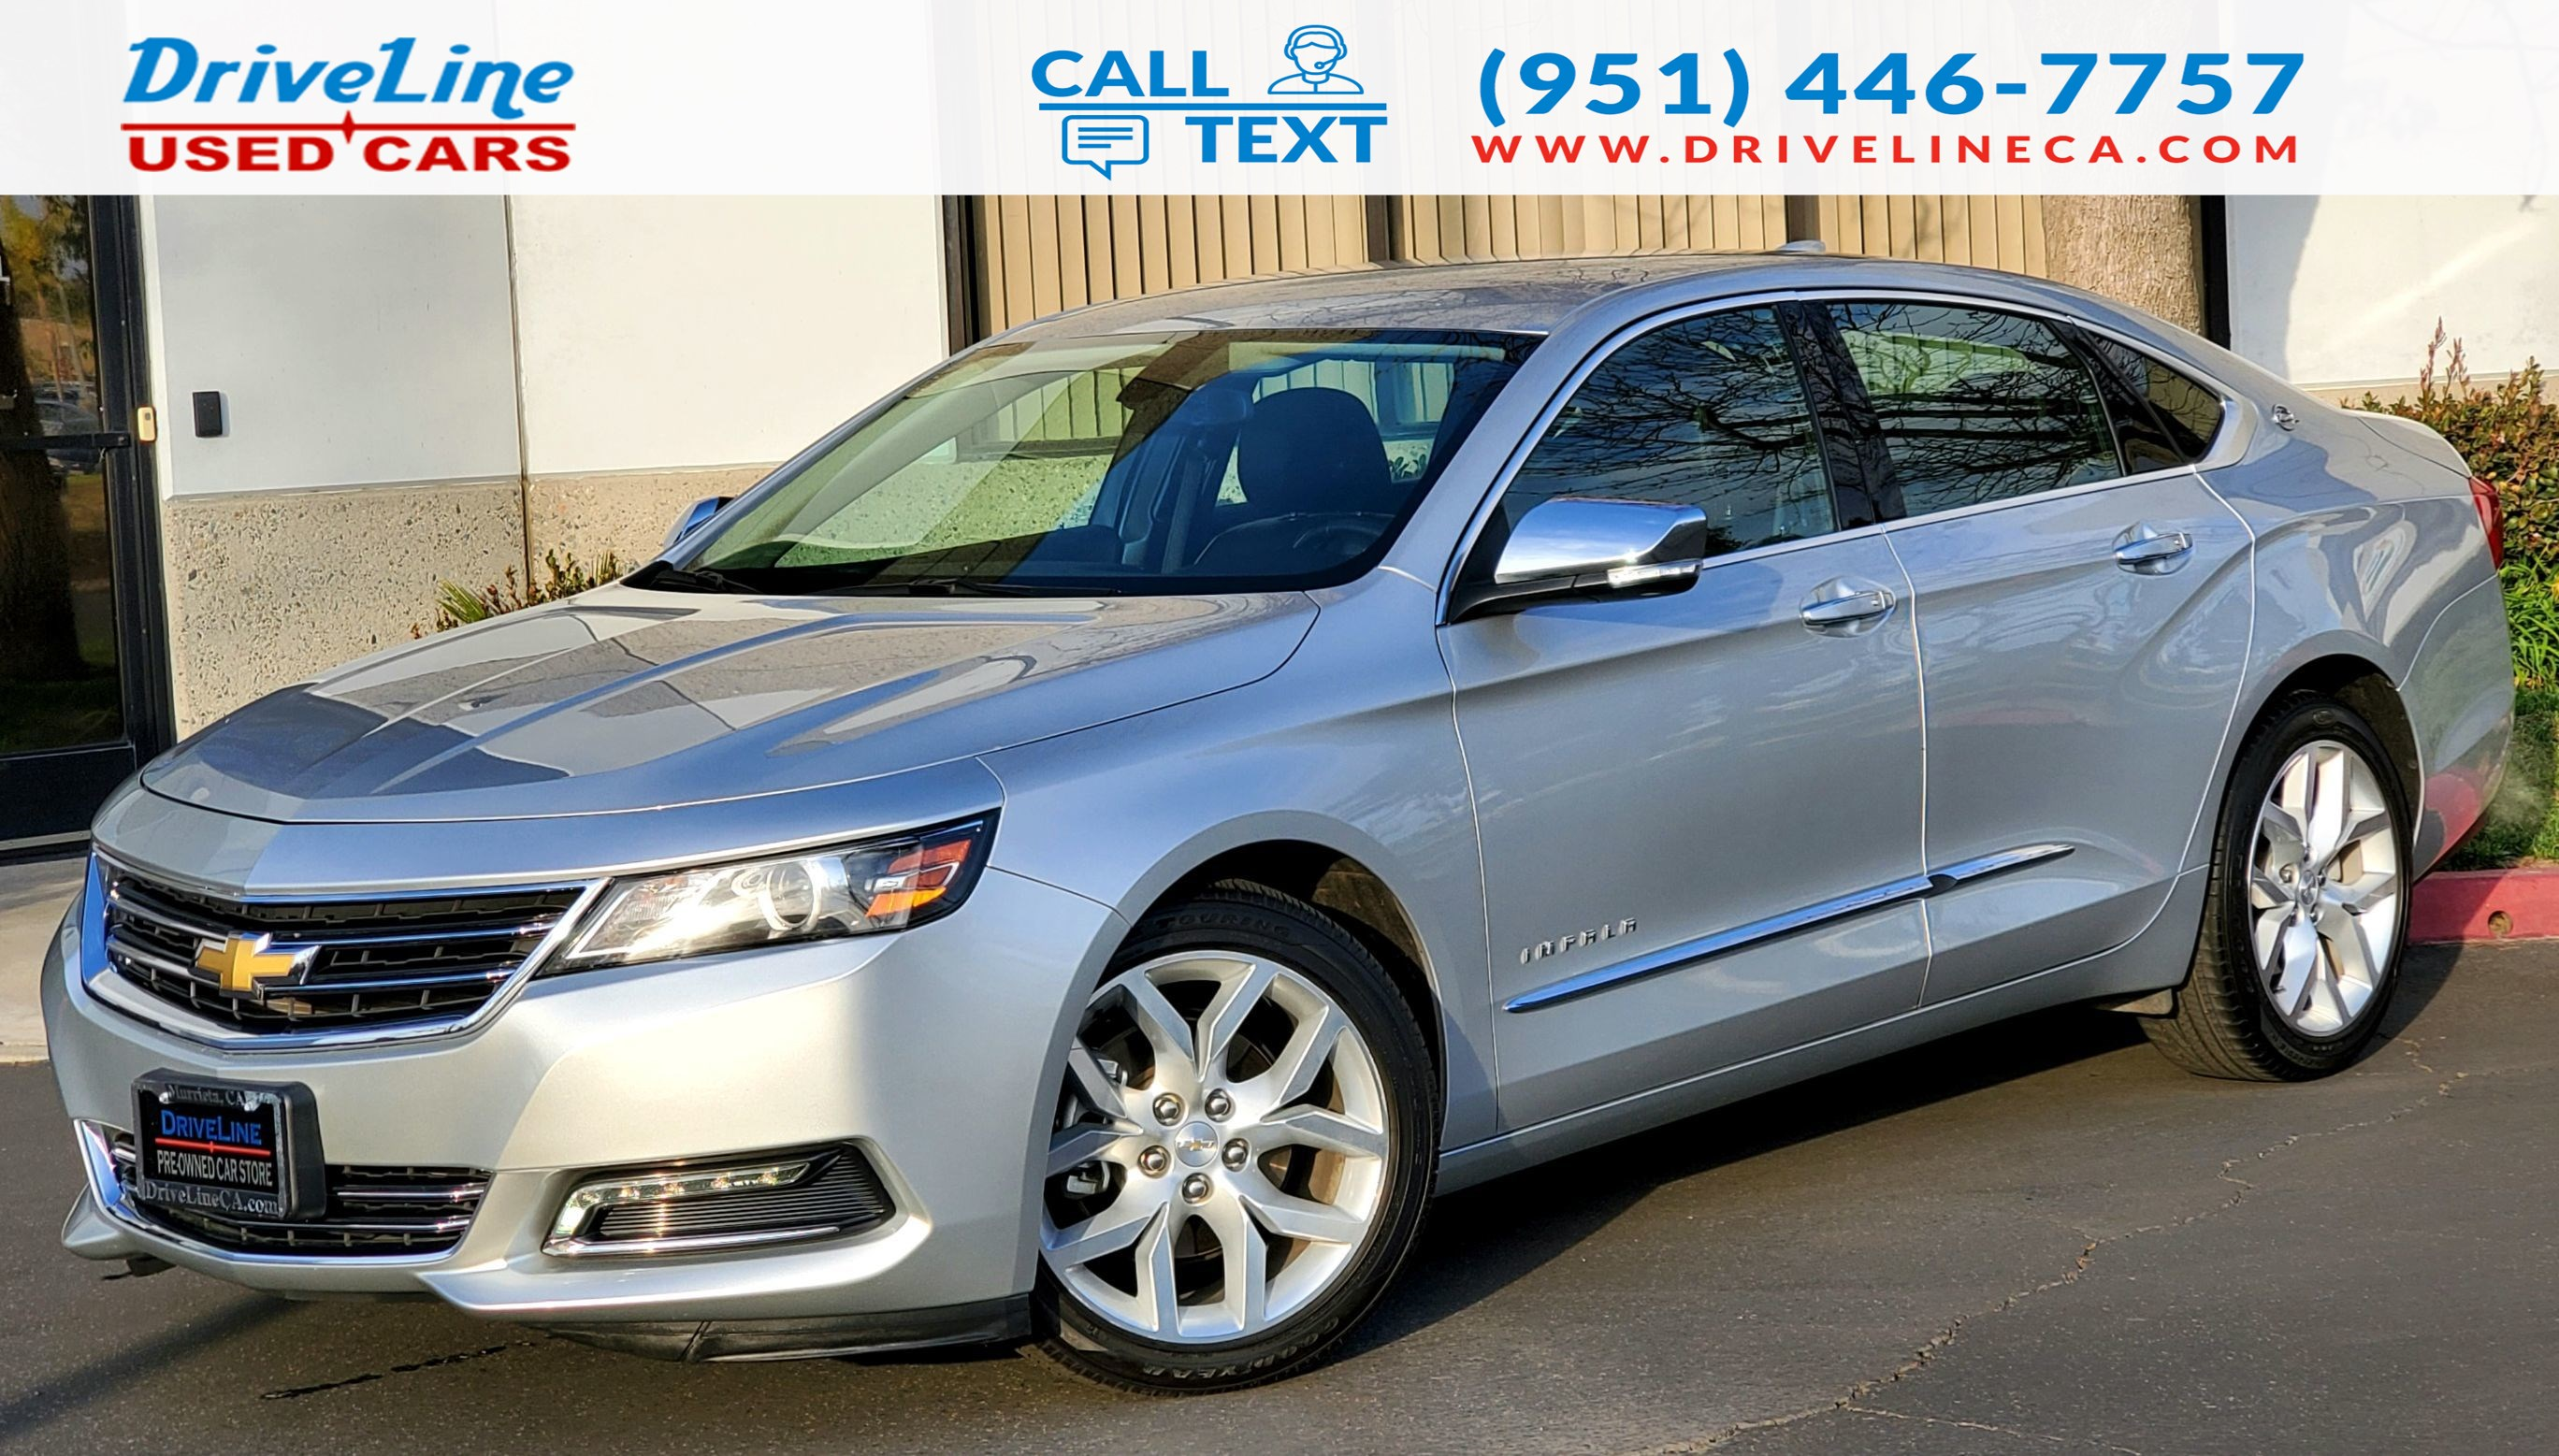 2019 Chevrolet Impala Premier - CONFIDENCE PACKAGE - $38,910 MSRP